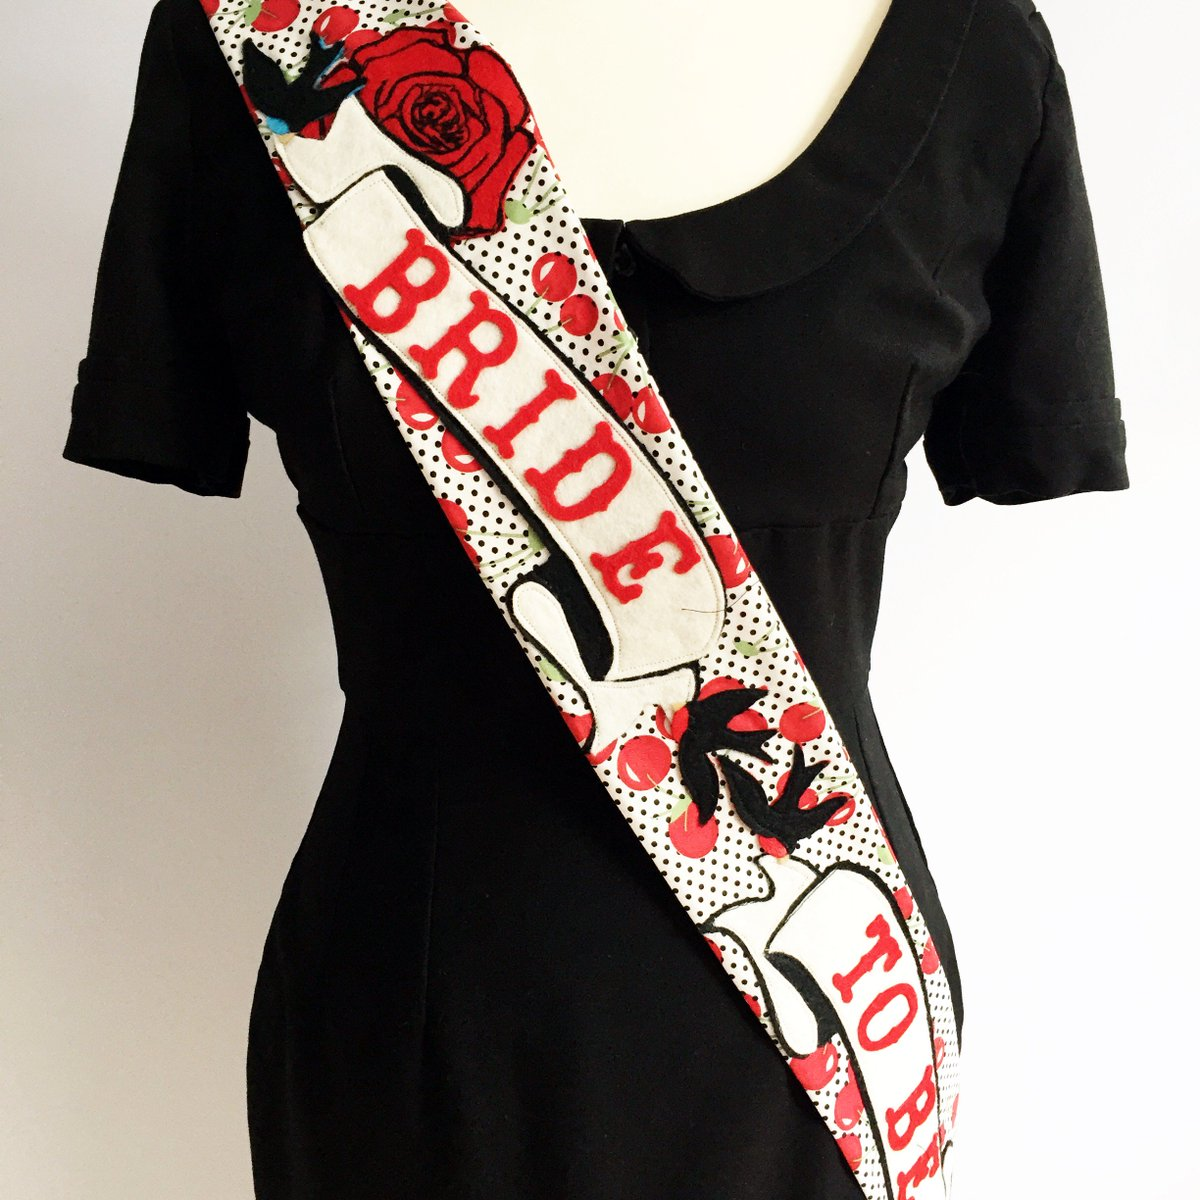 Hi @HandmadeHour I make handmade hen party sashes that are all about being a bit different #HandmadeHour https://t.co/DwVCcAmkC2